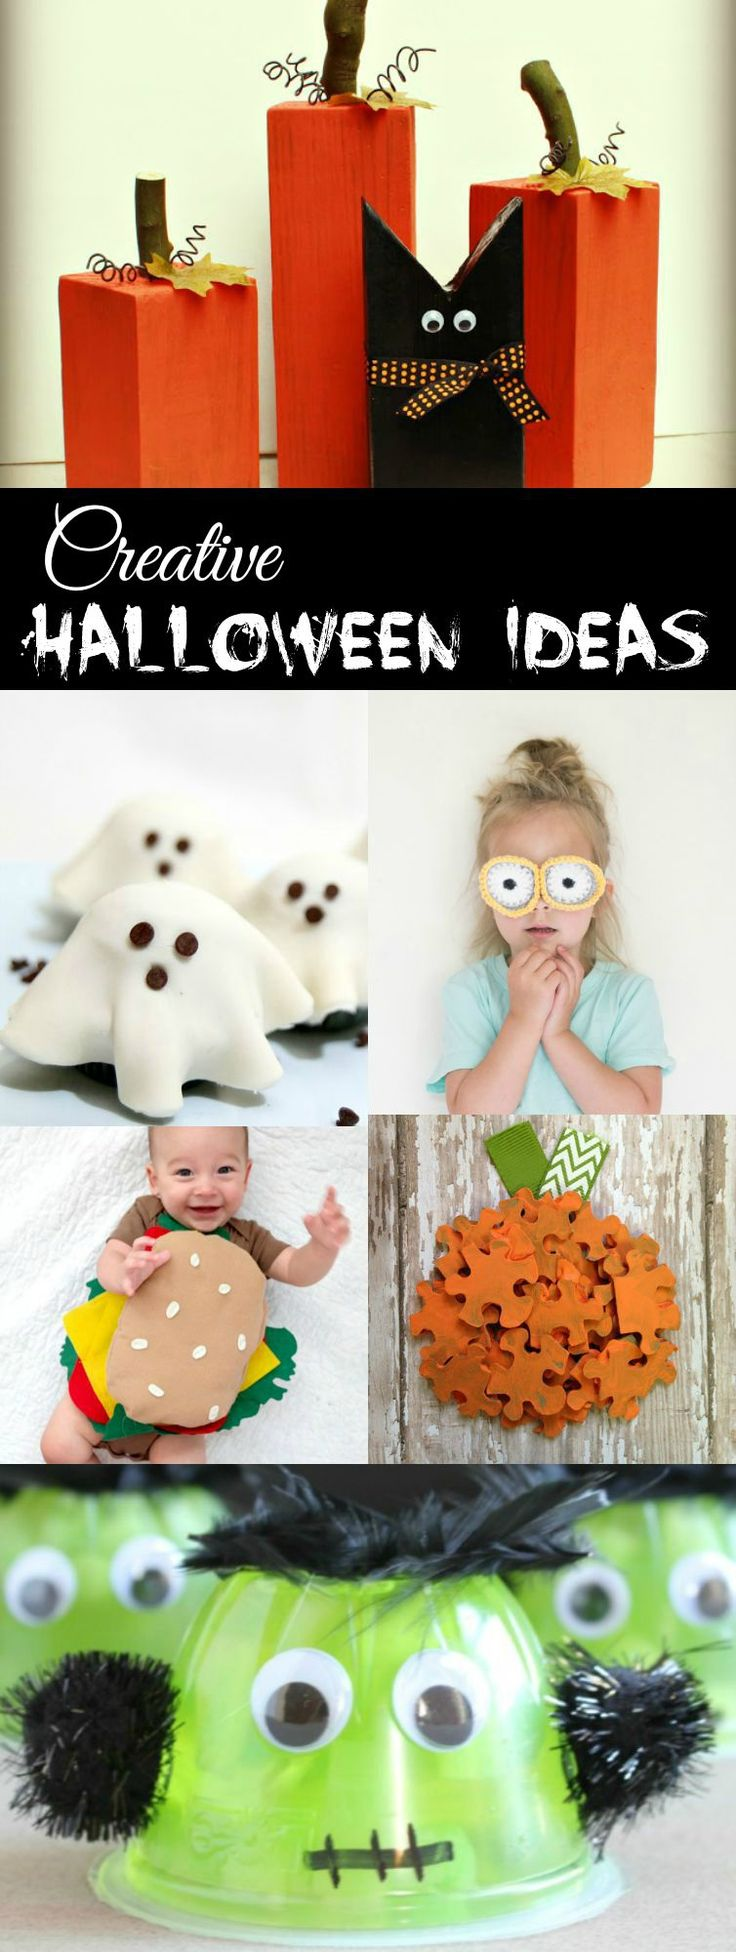 Creative Halloween Ideas collected by The Melrose Family